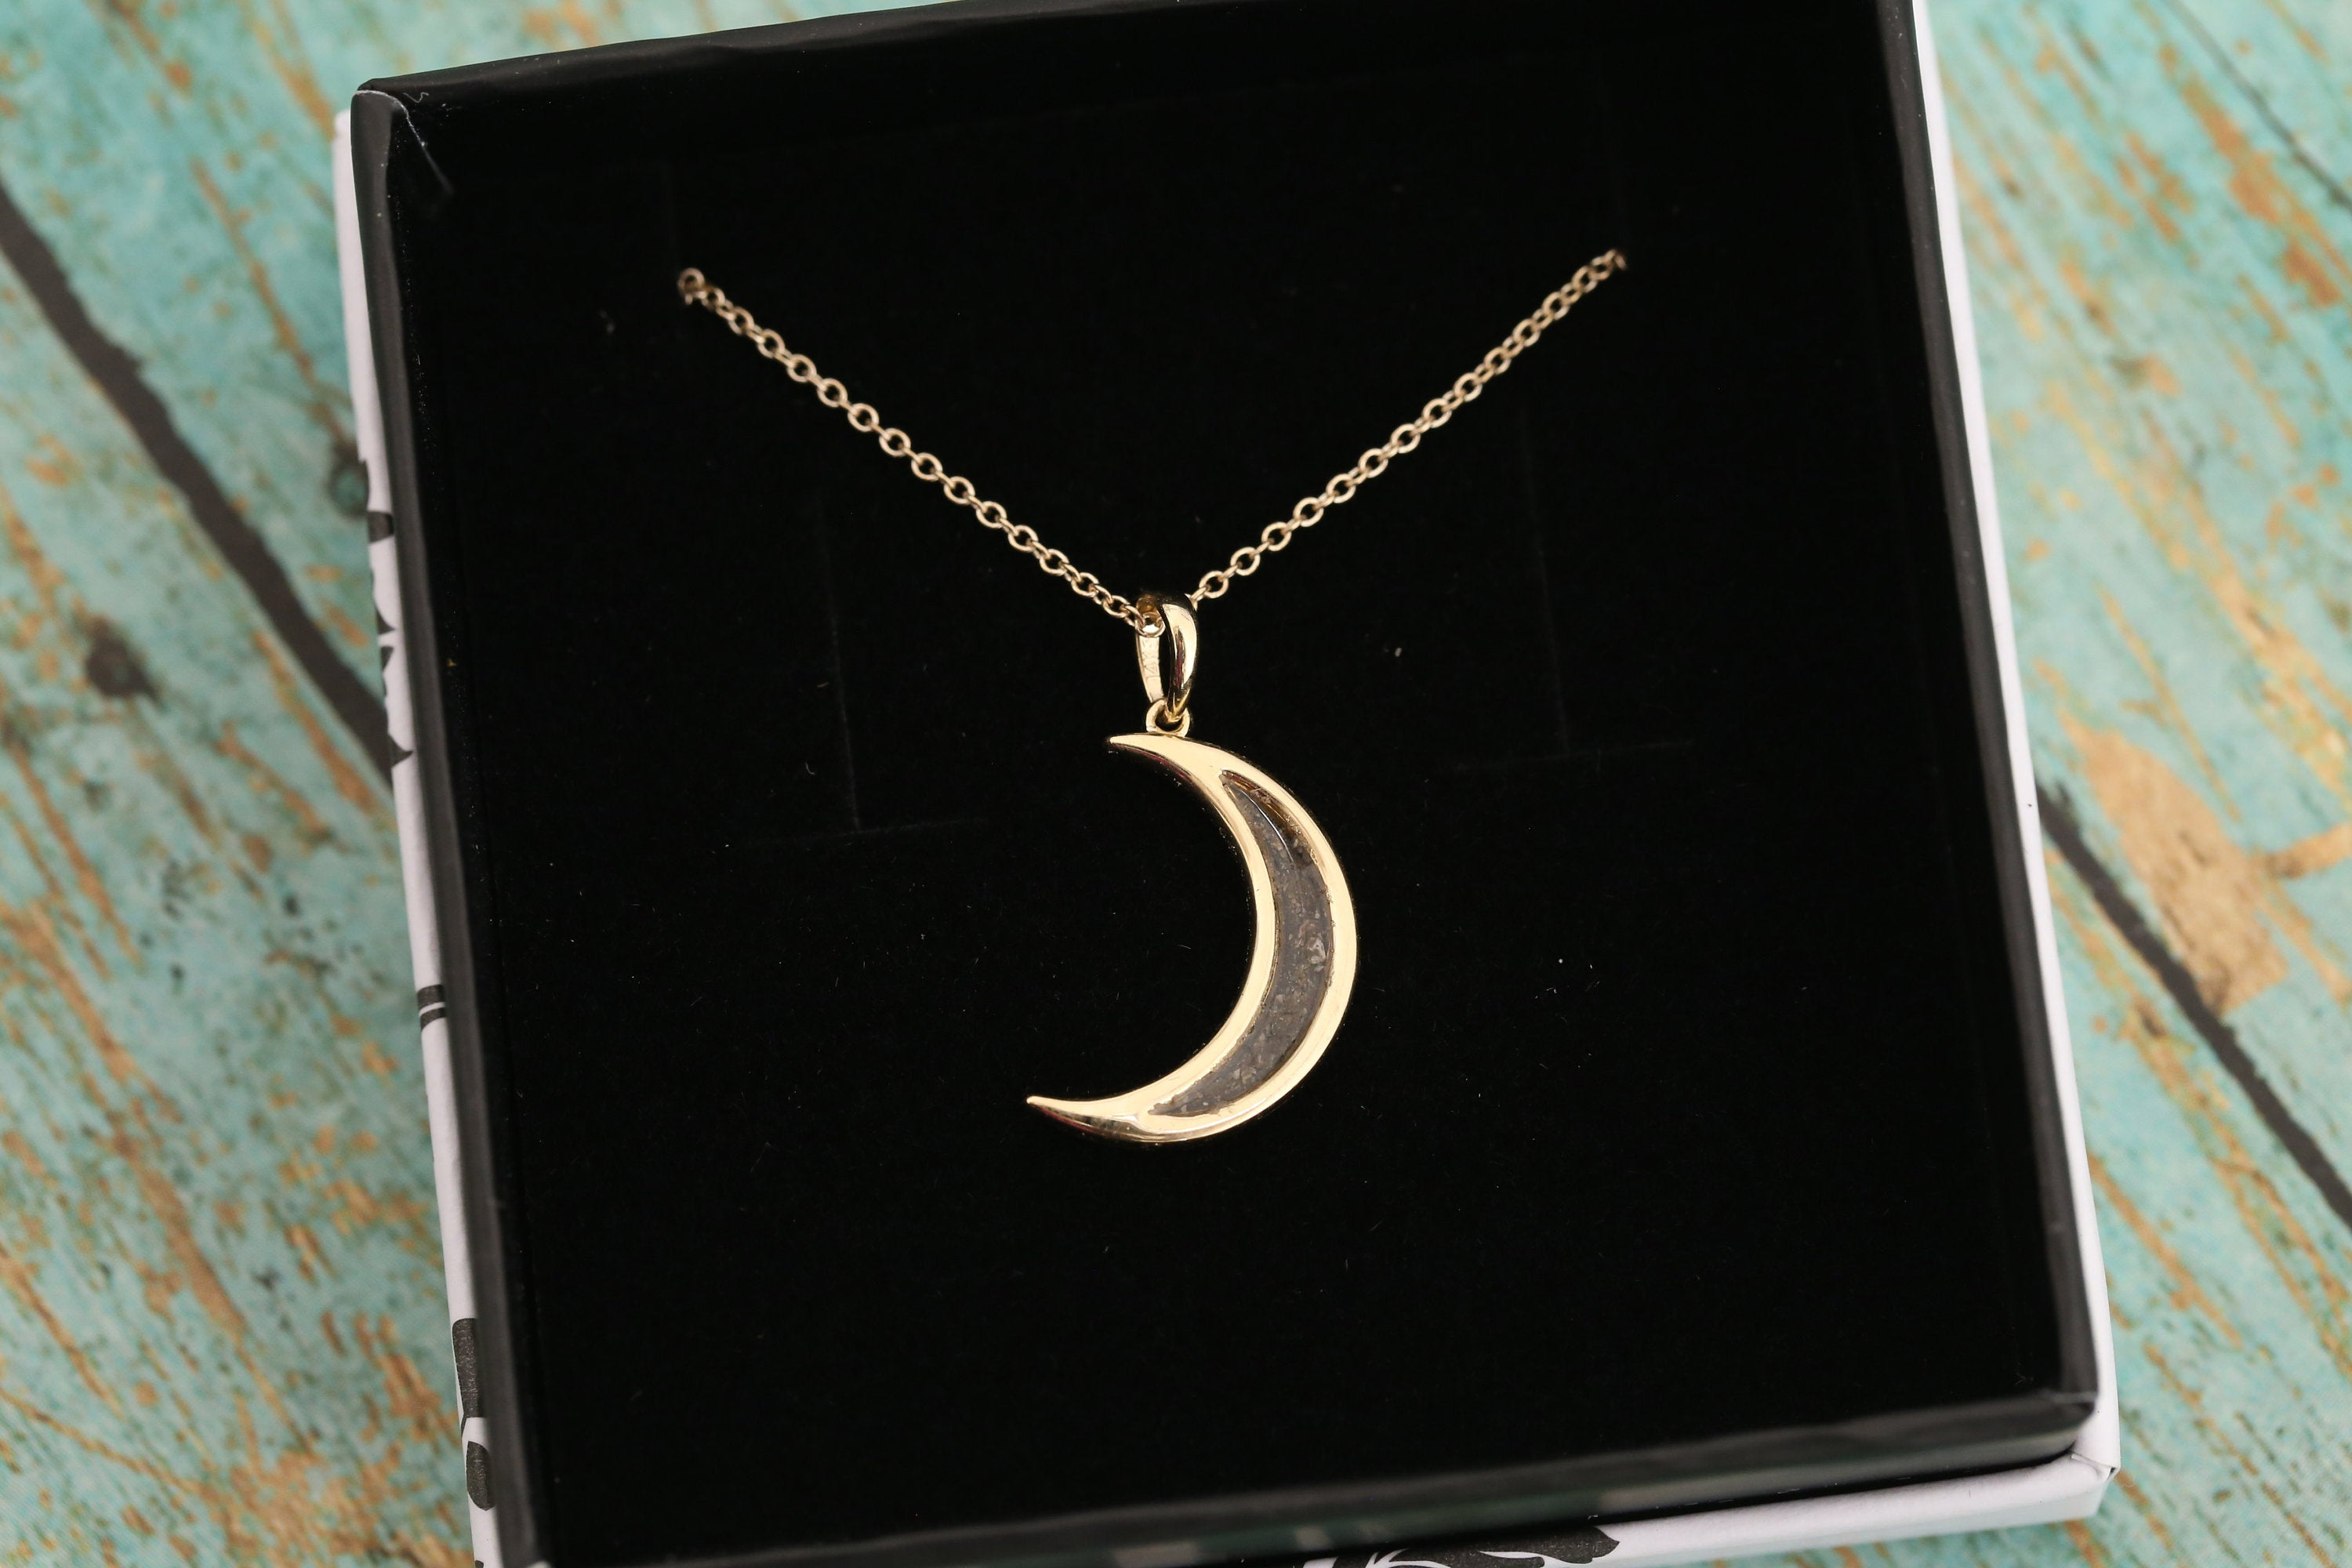 14k Yellow Gold Cremation Moon Pendant - Crescent Moon - Cremation Jewelry - Ash Necklace - Ash Jewelry - Urn Necklace - Urn - Pet Loss